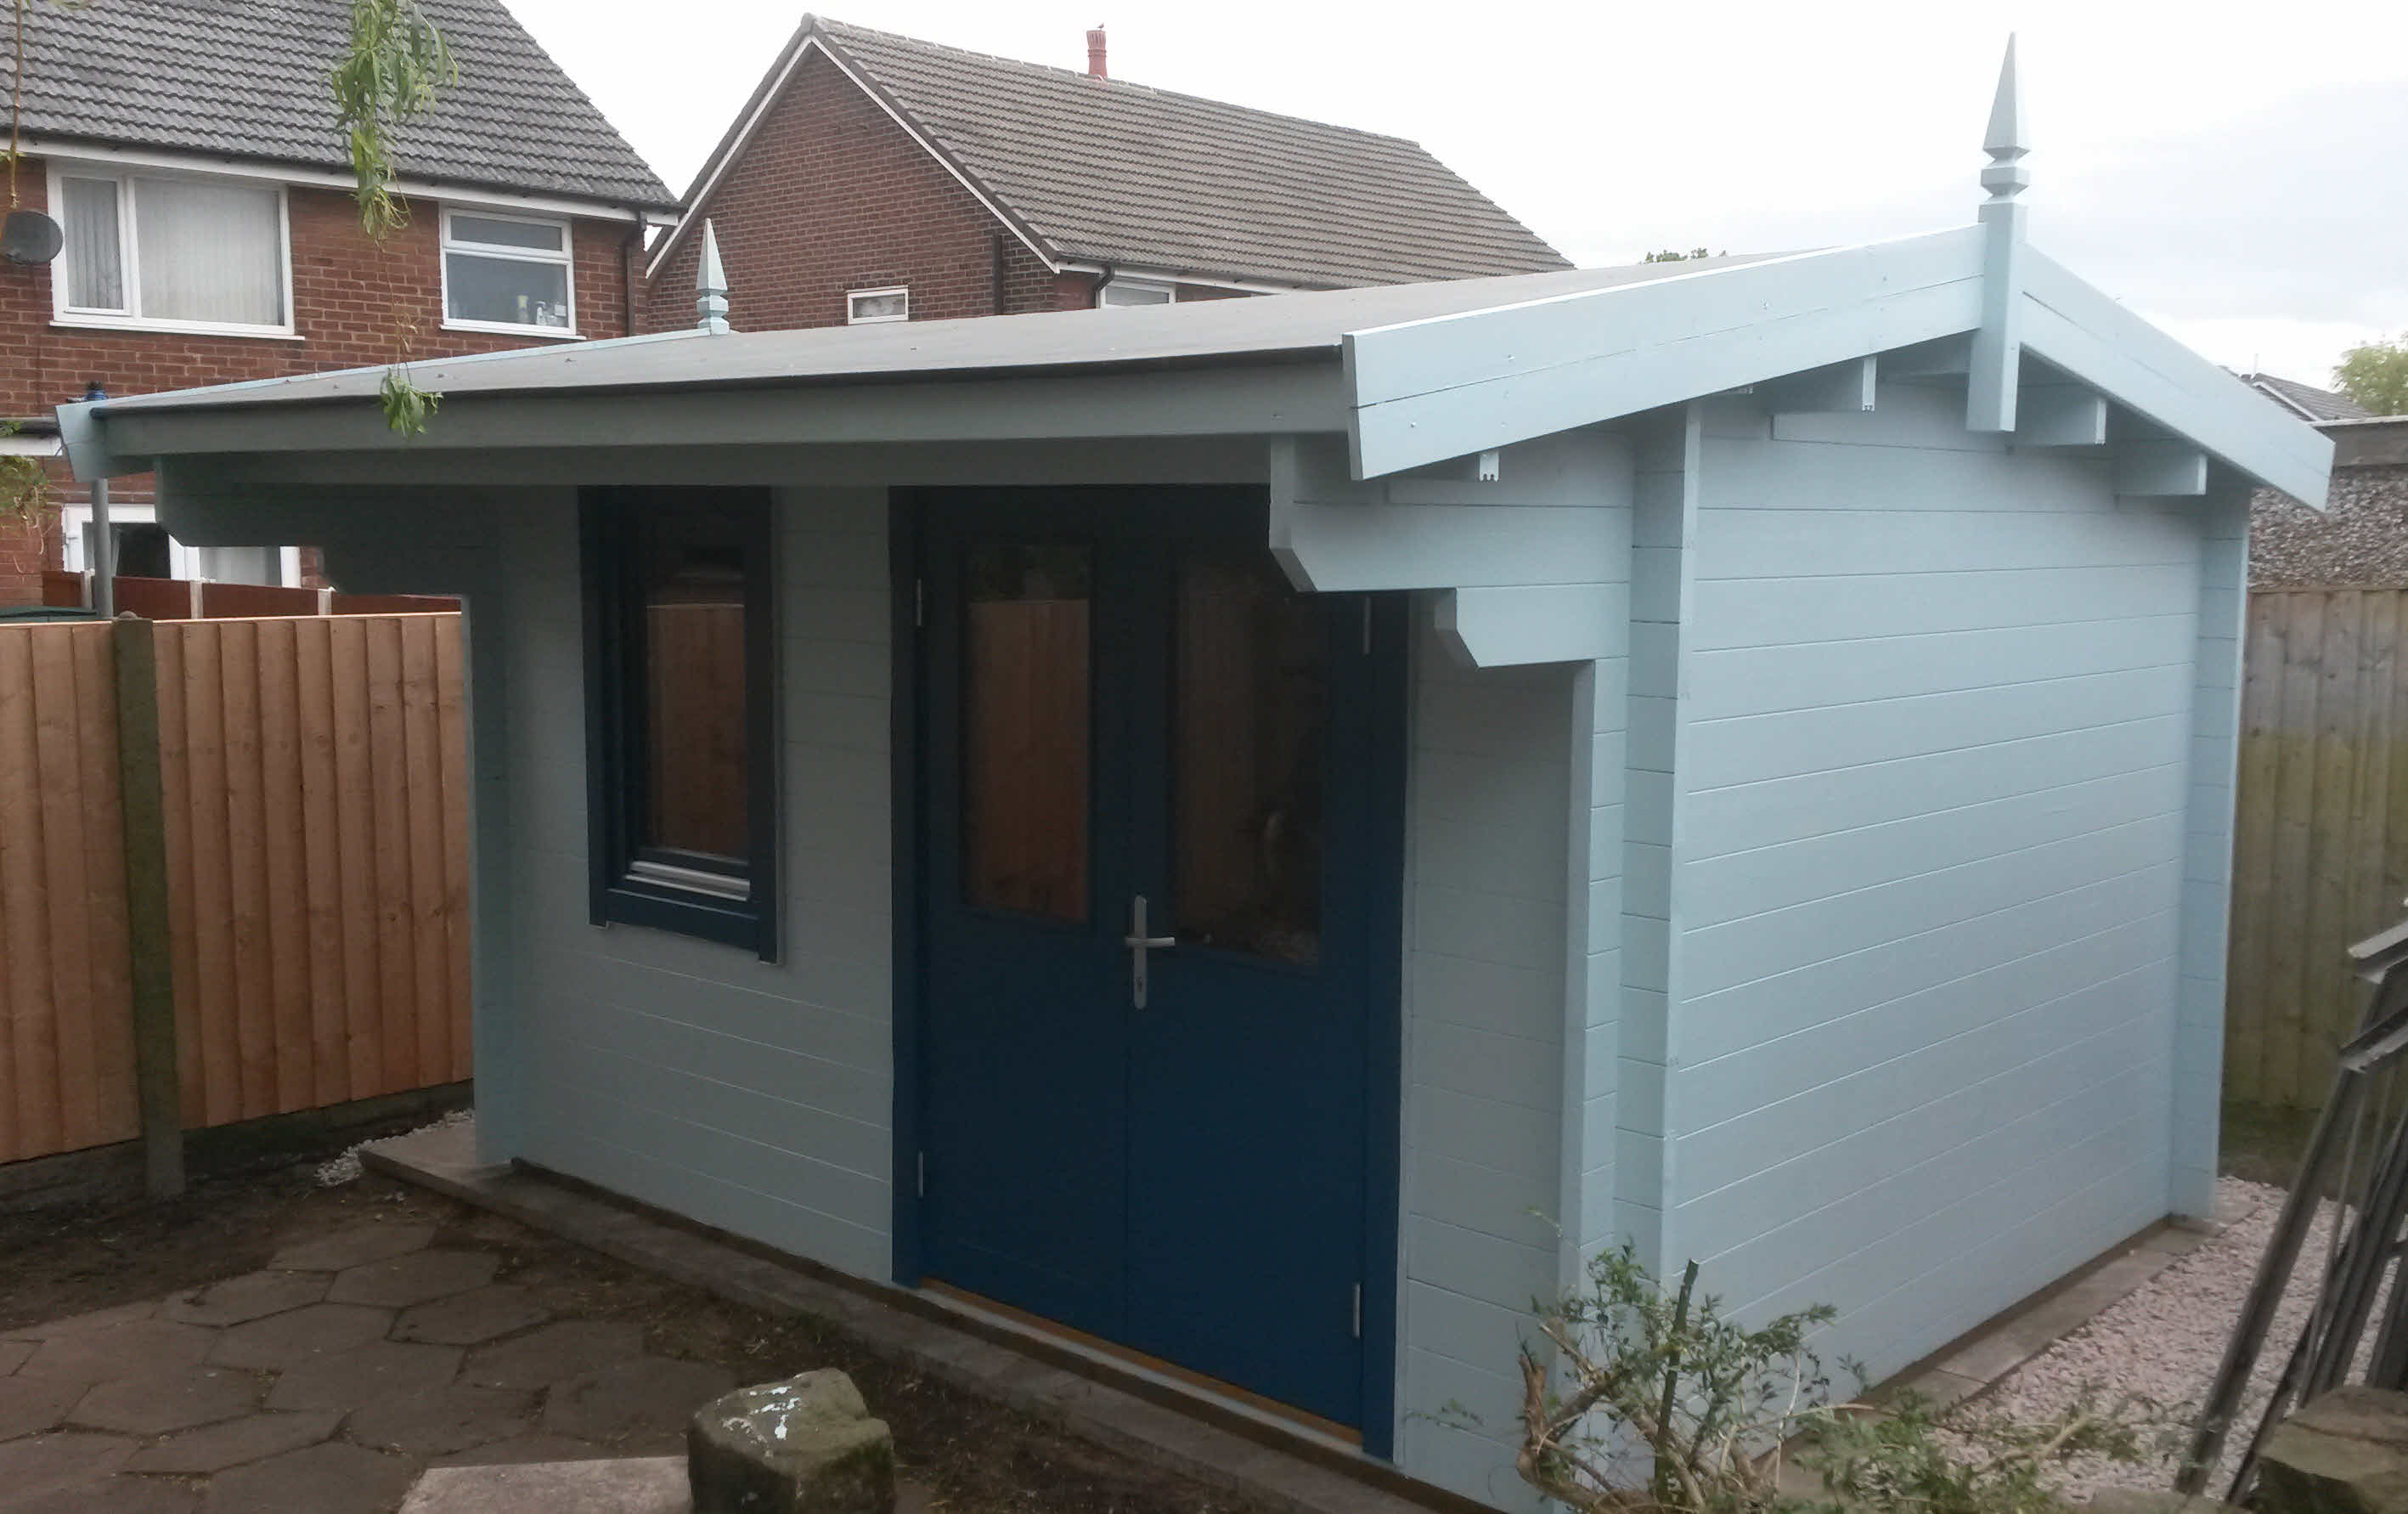 Log cabin installation for a customer in Leyland, Preston.